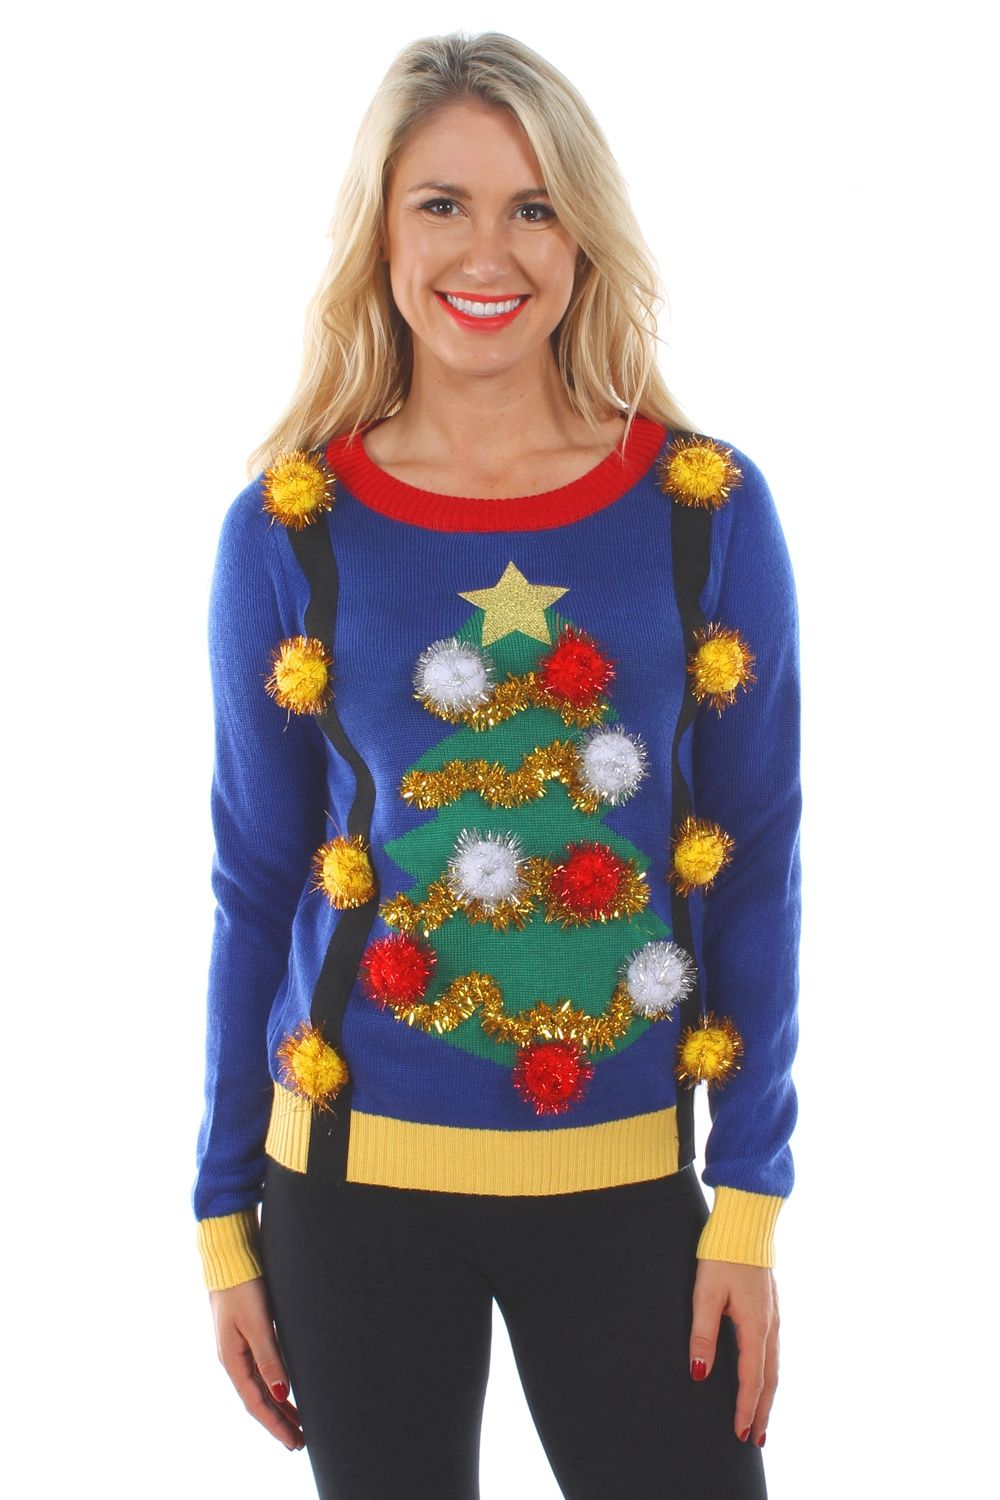 sweaters cozy suspenders hipster this adorable womens christmas sweater brings the two styles together in a cuddly package of awesome - Womens Christmas Sweaters